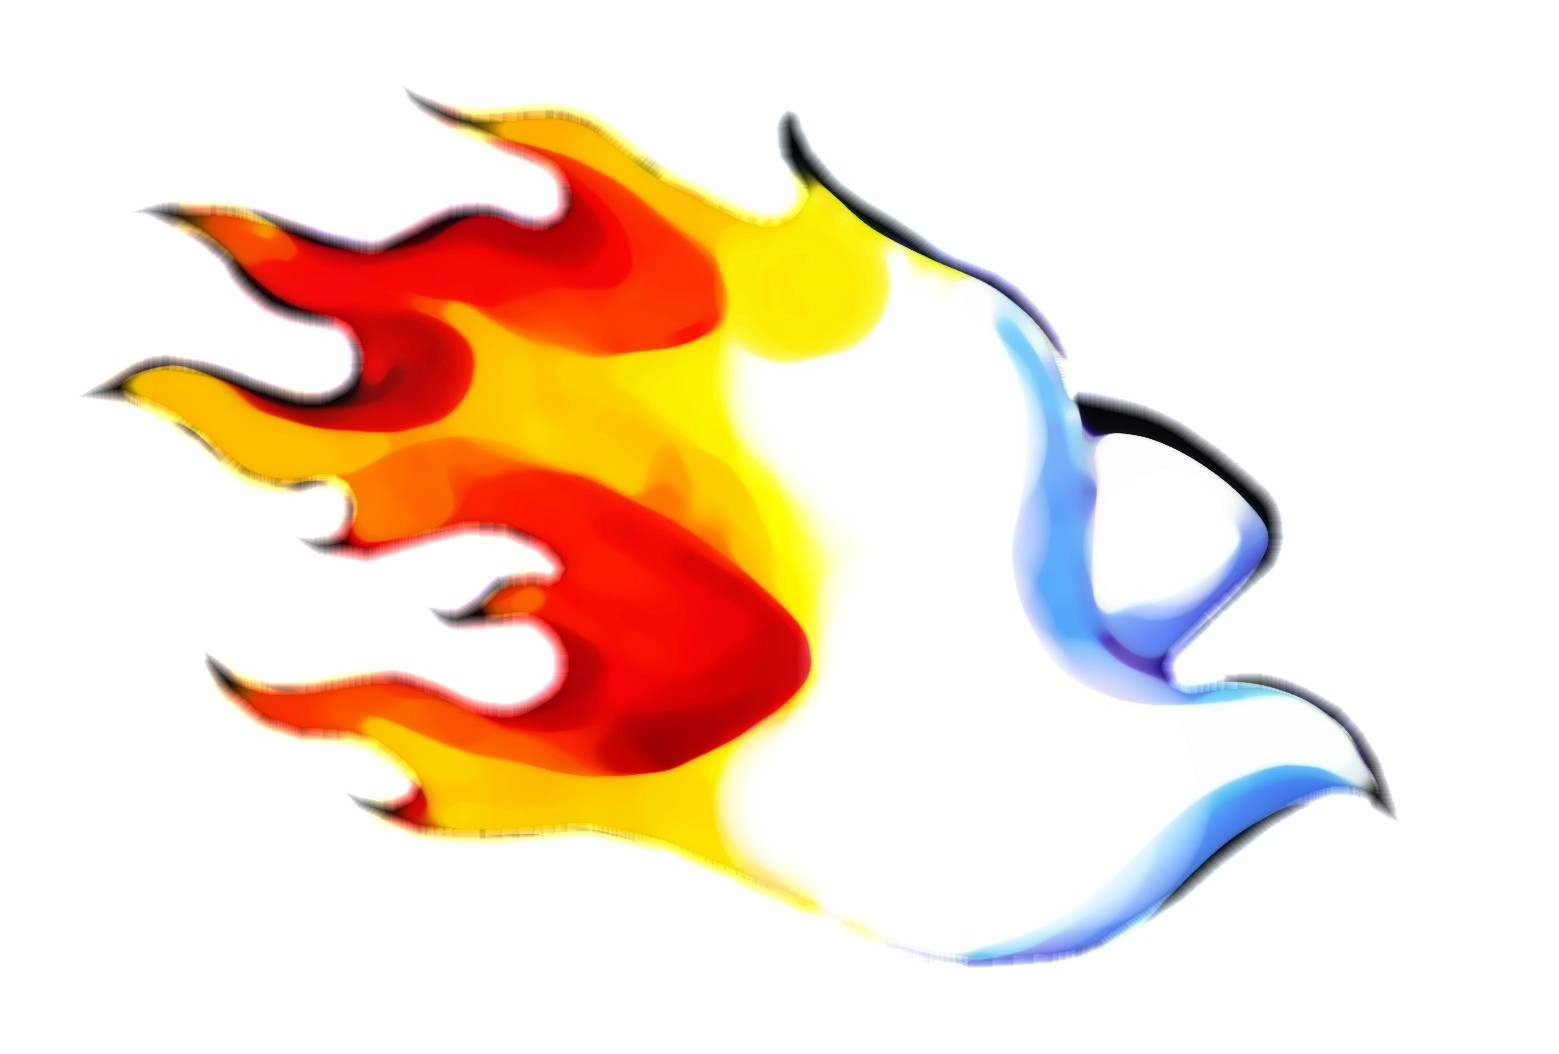 Flames clipart holy ghost fire Free  Free on image